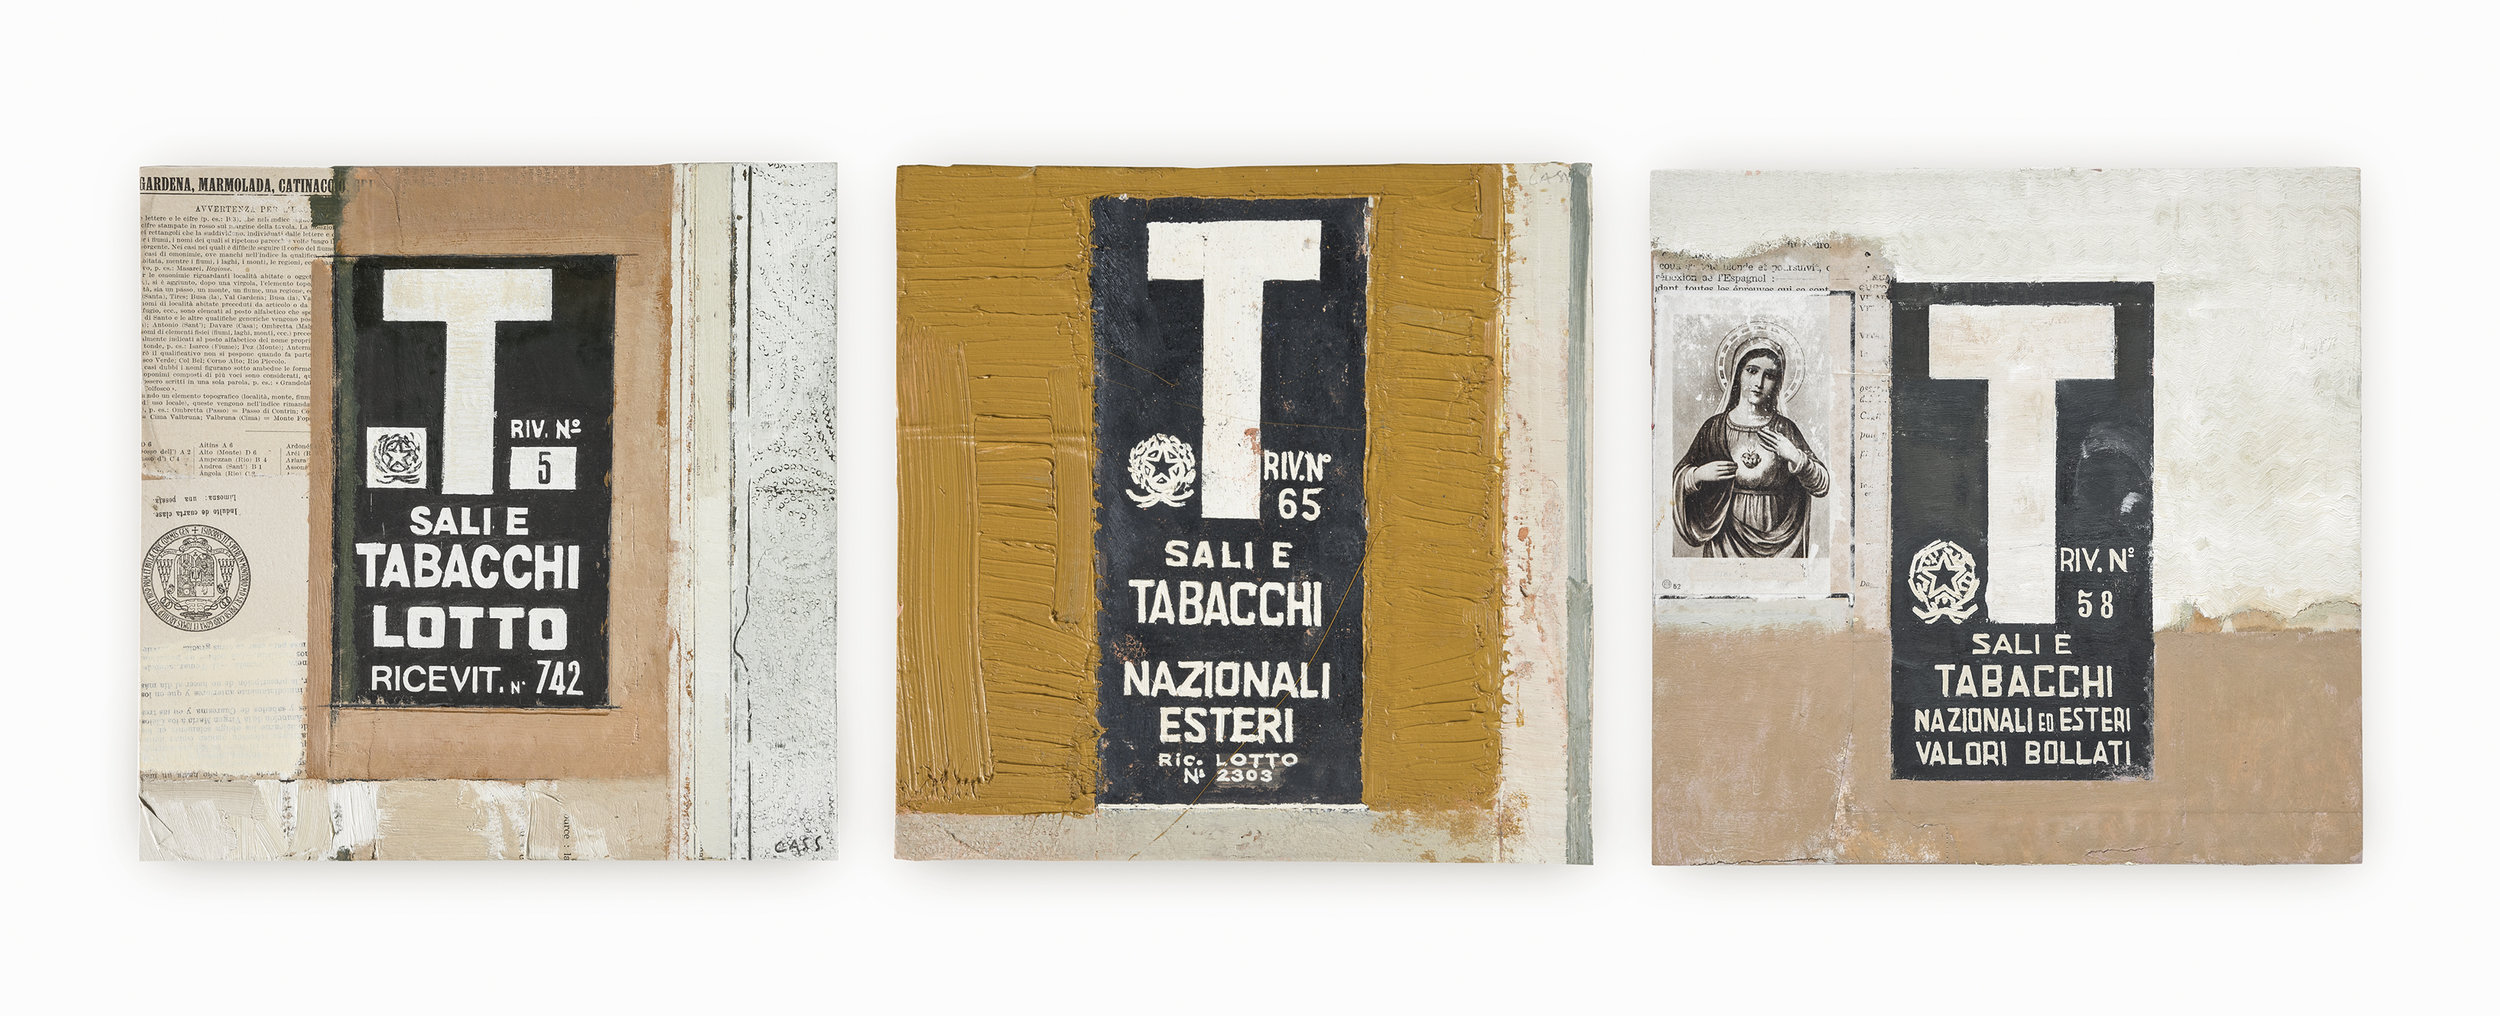 Trio of Tabacchi Signs  2017 Oil on panels and recycled papers · 30 x 30 cm (framed) Currently available as fundraising artworks for Cass' 2021 Venice showcase: info@davidcass.art